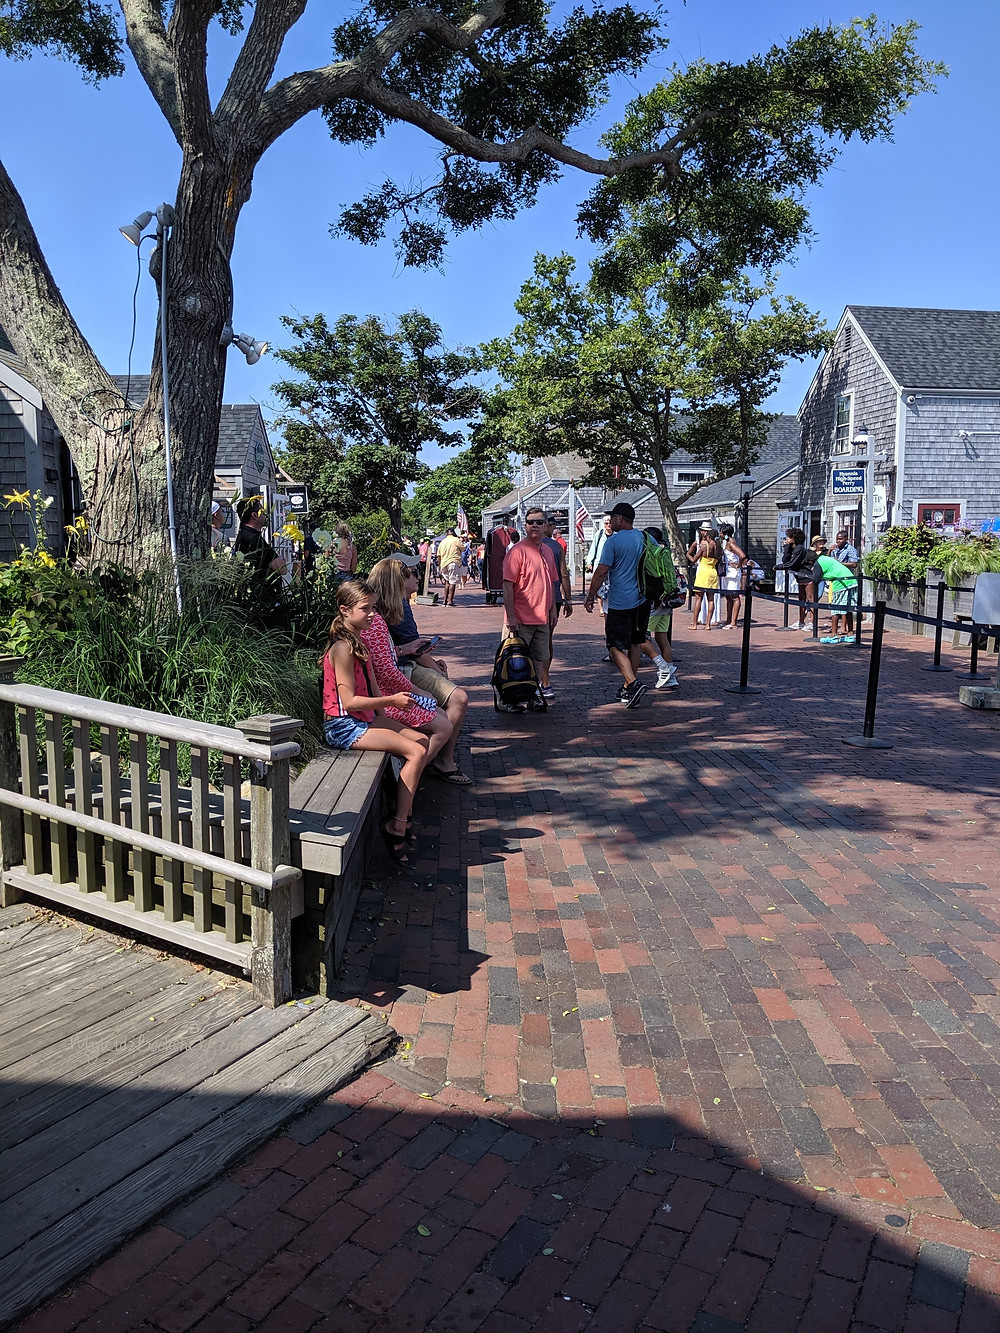 Off-the-ferry-in-Nantucket